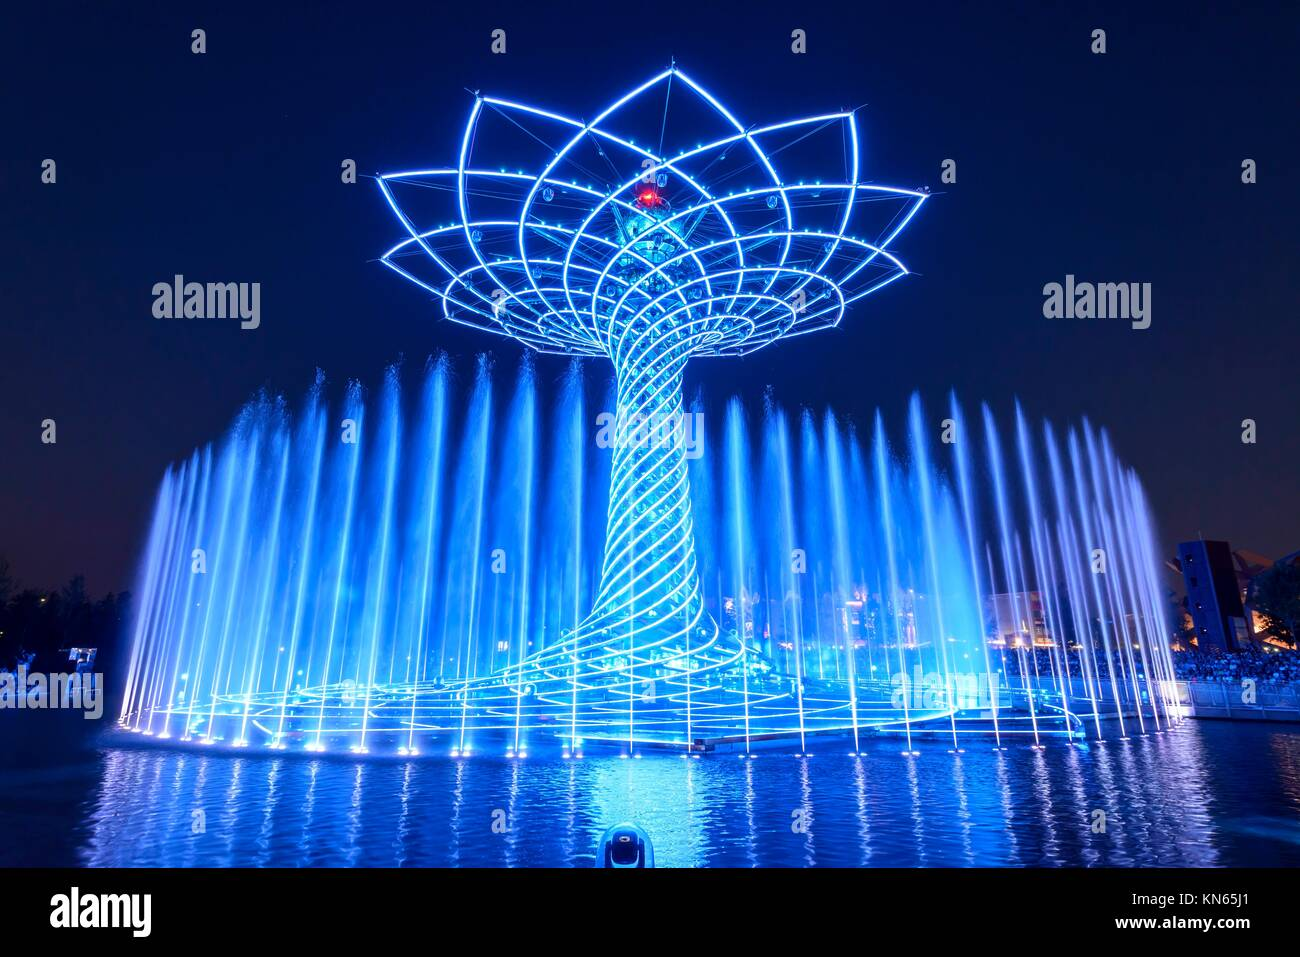 MILAN, ITALY - jun 30: EXPO 2015, night view of lights and blue colored high gushes at the lights show on the fair - Stock Image